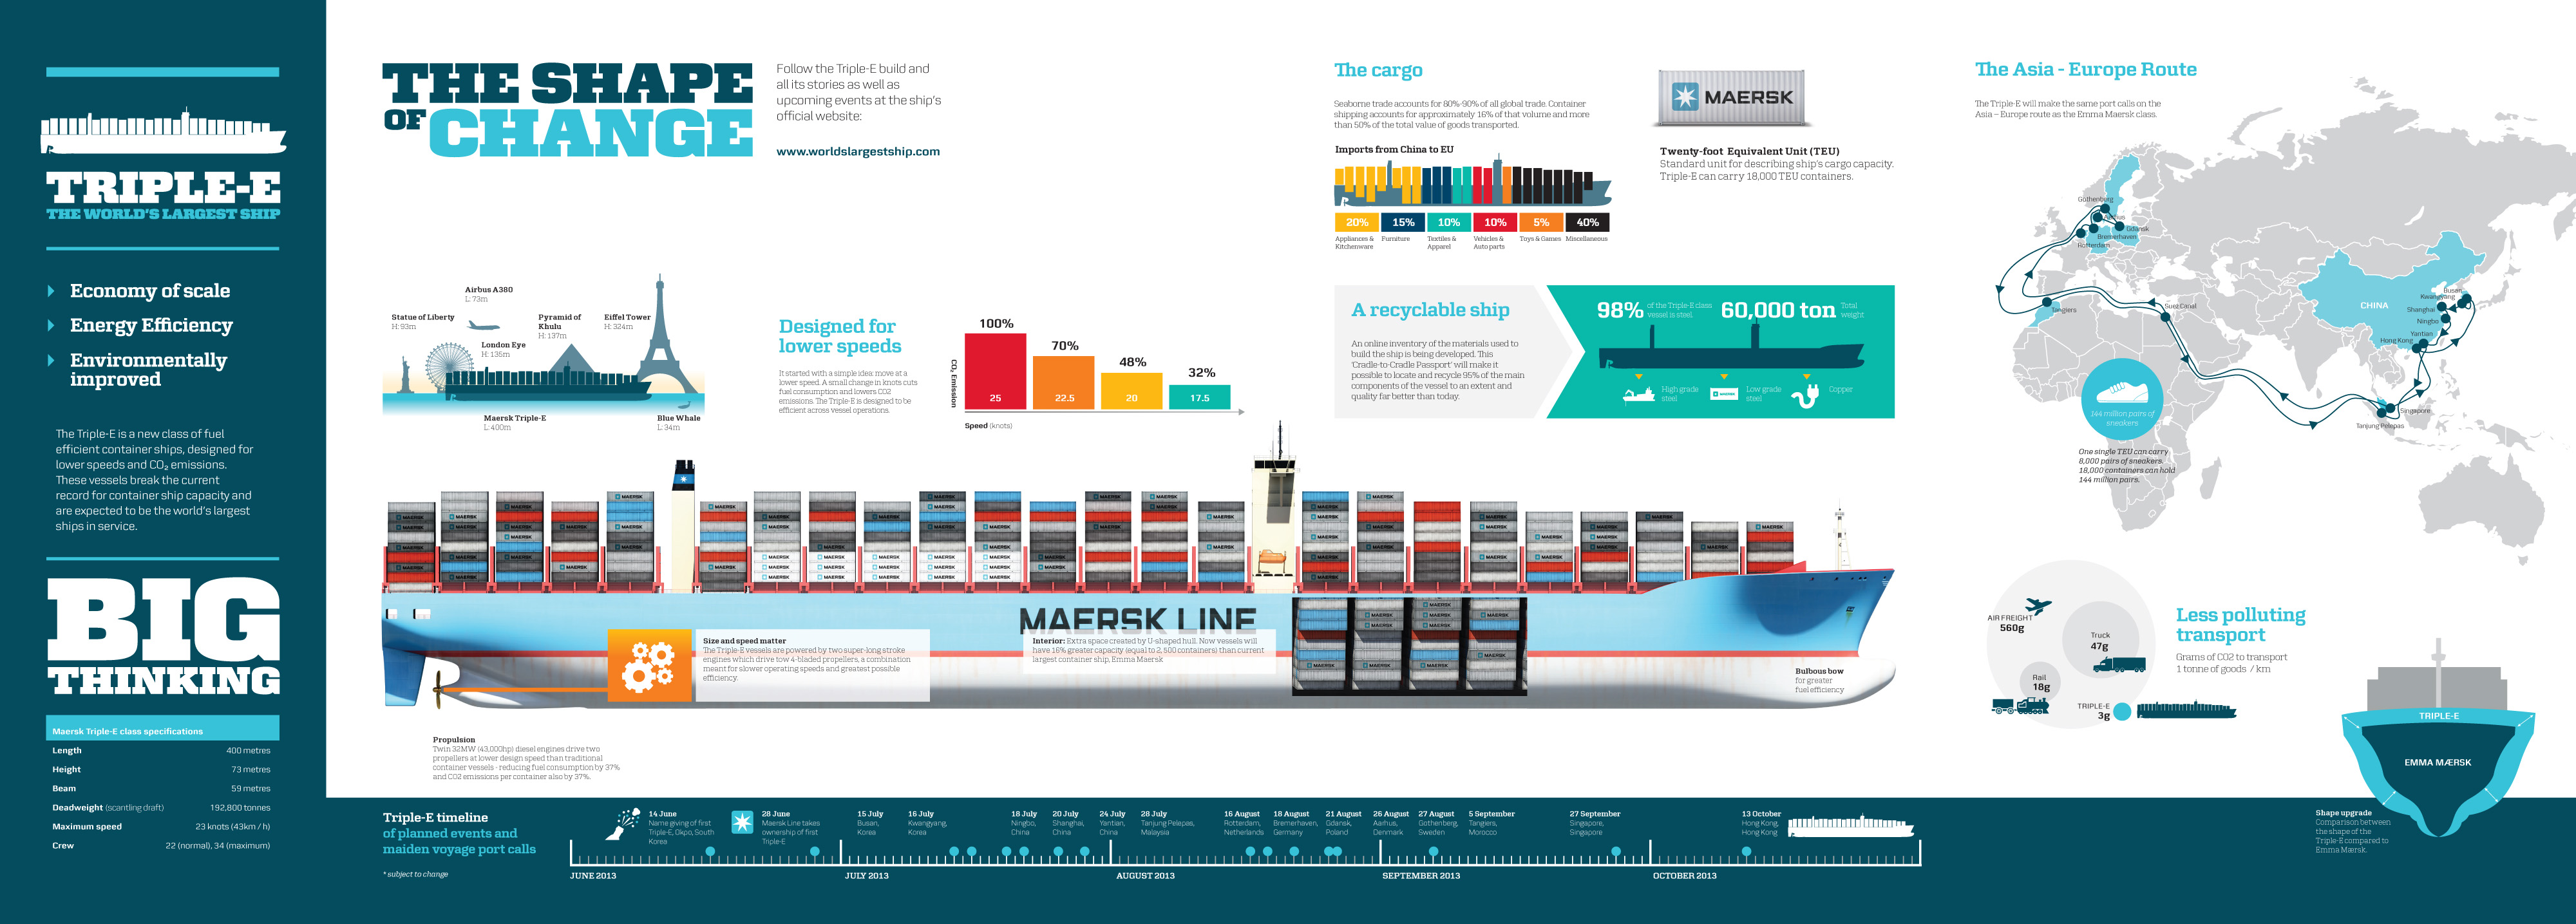 The biggest ships in the world 2